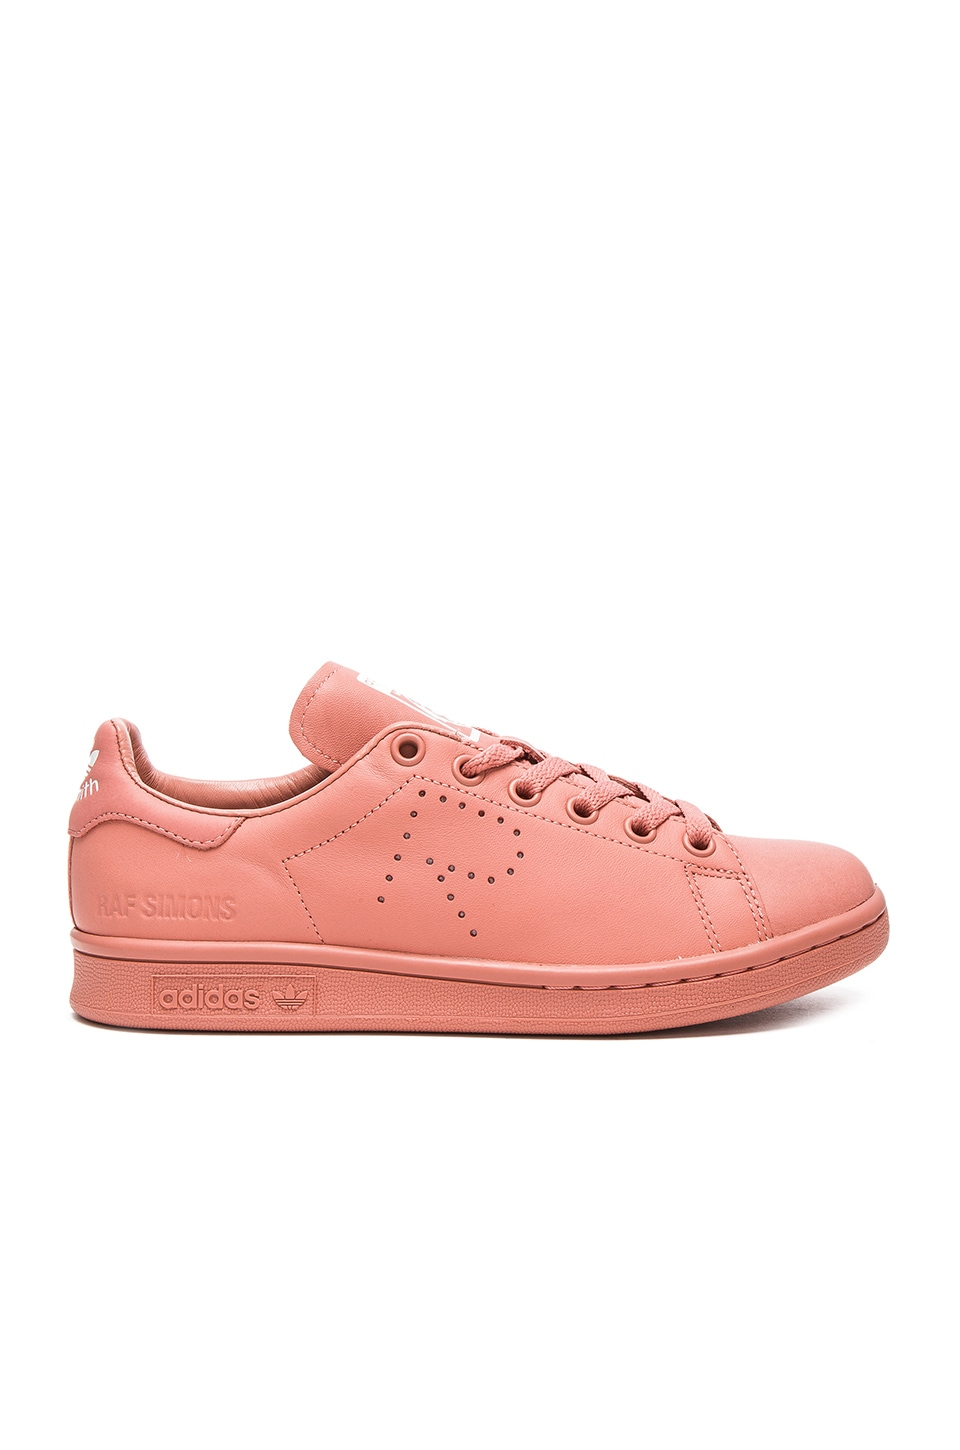 adidas SMITH by Raf Simons SNEAKERS STAN SMITH adidas en Ash Pink REVOLVE 02100f